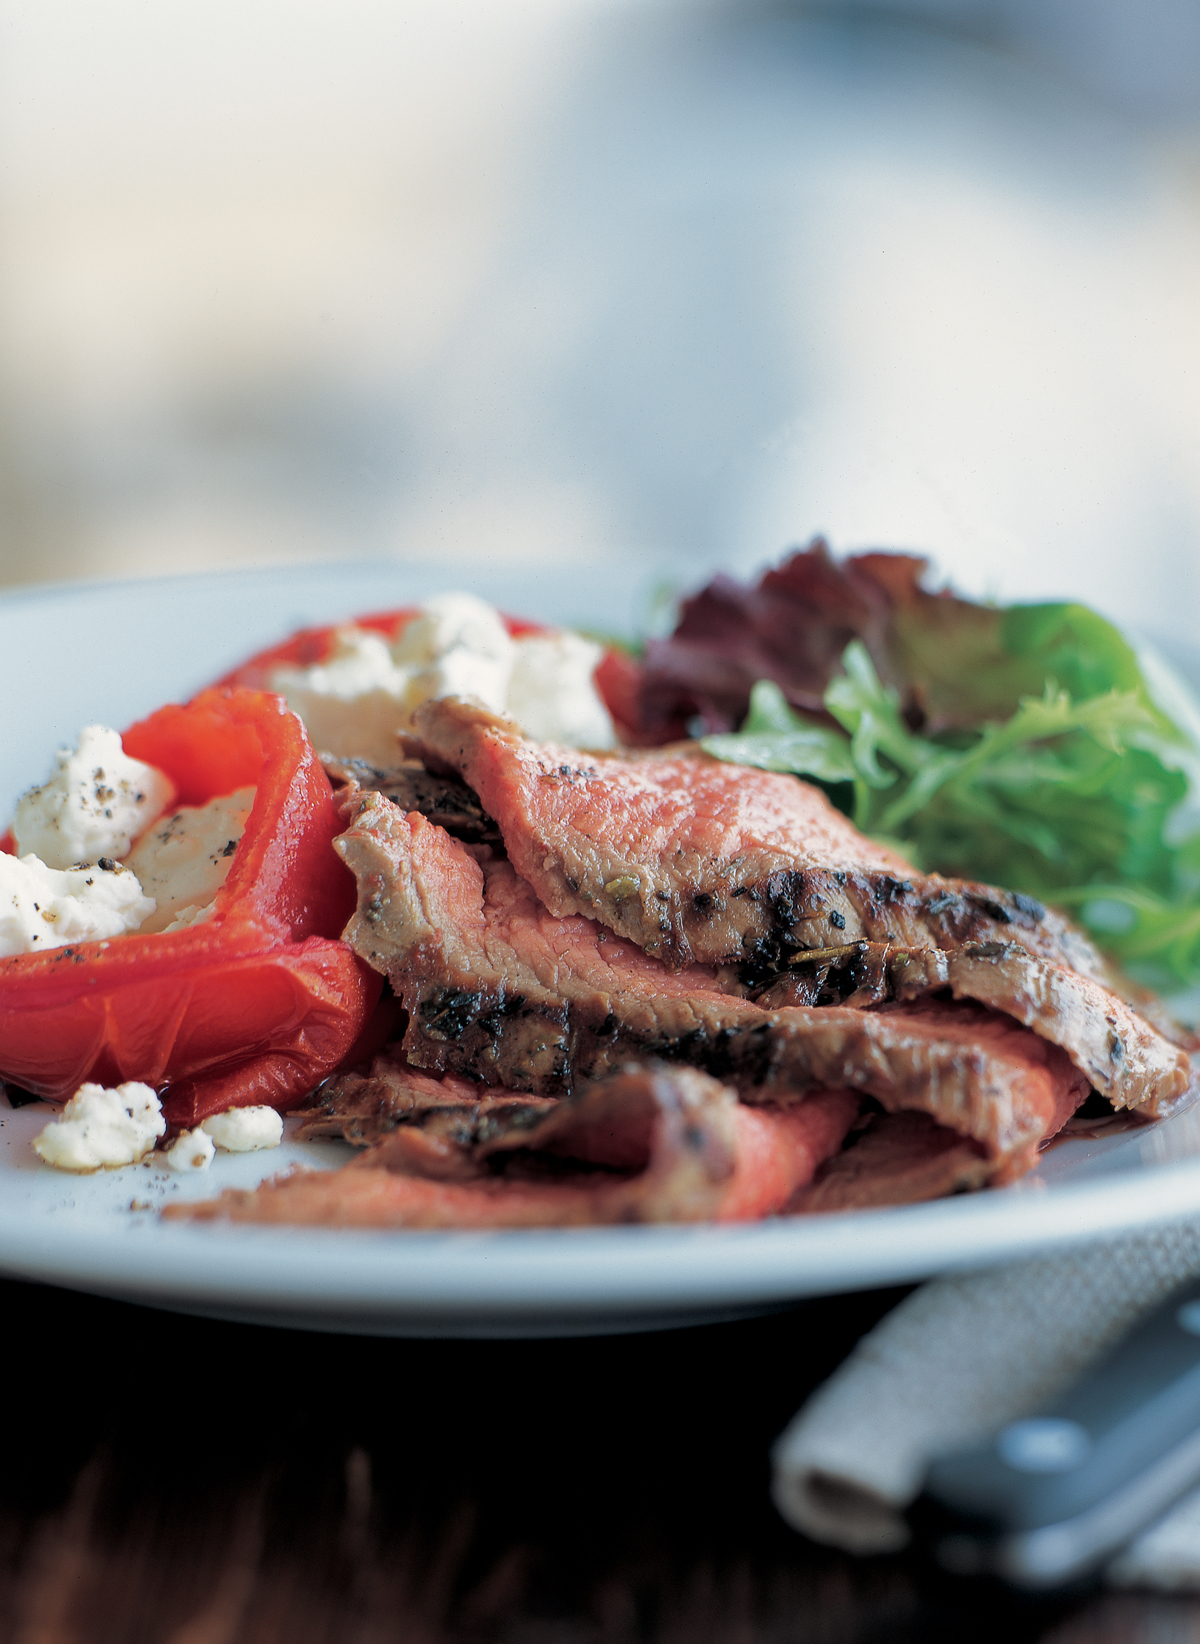 Grilled Flank Steak with Tomatoes